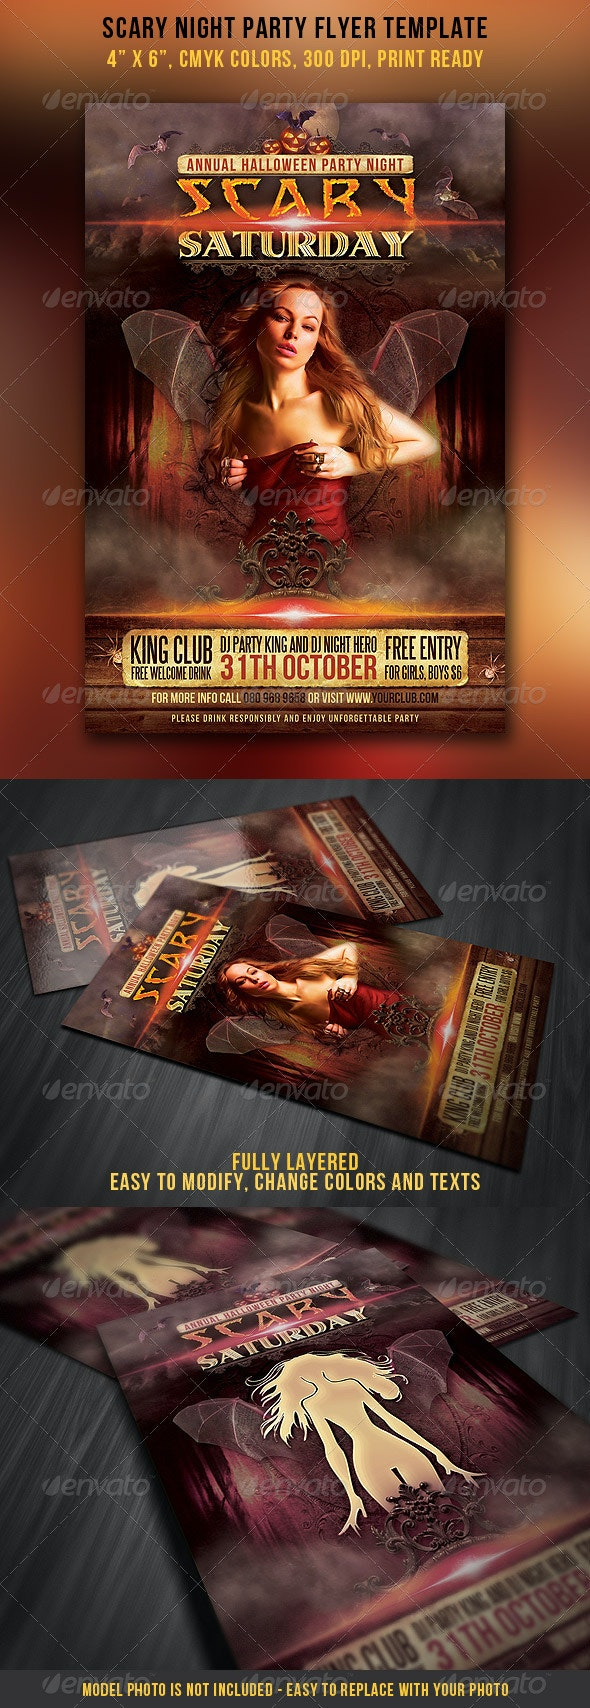 Scary Night Party Flyer - Clubs & Parties Events